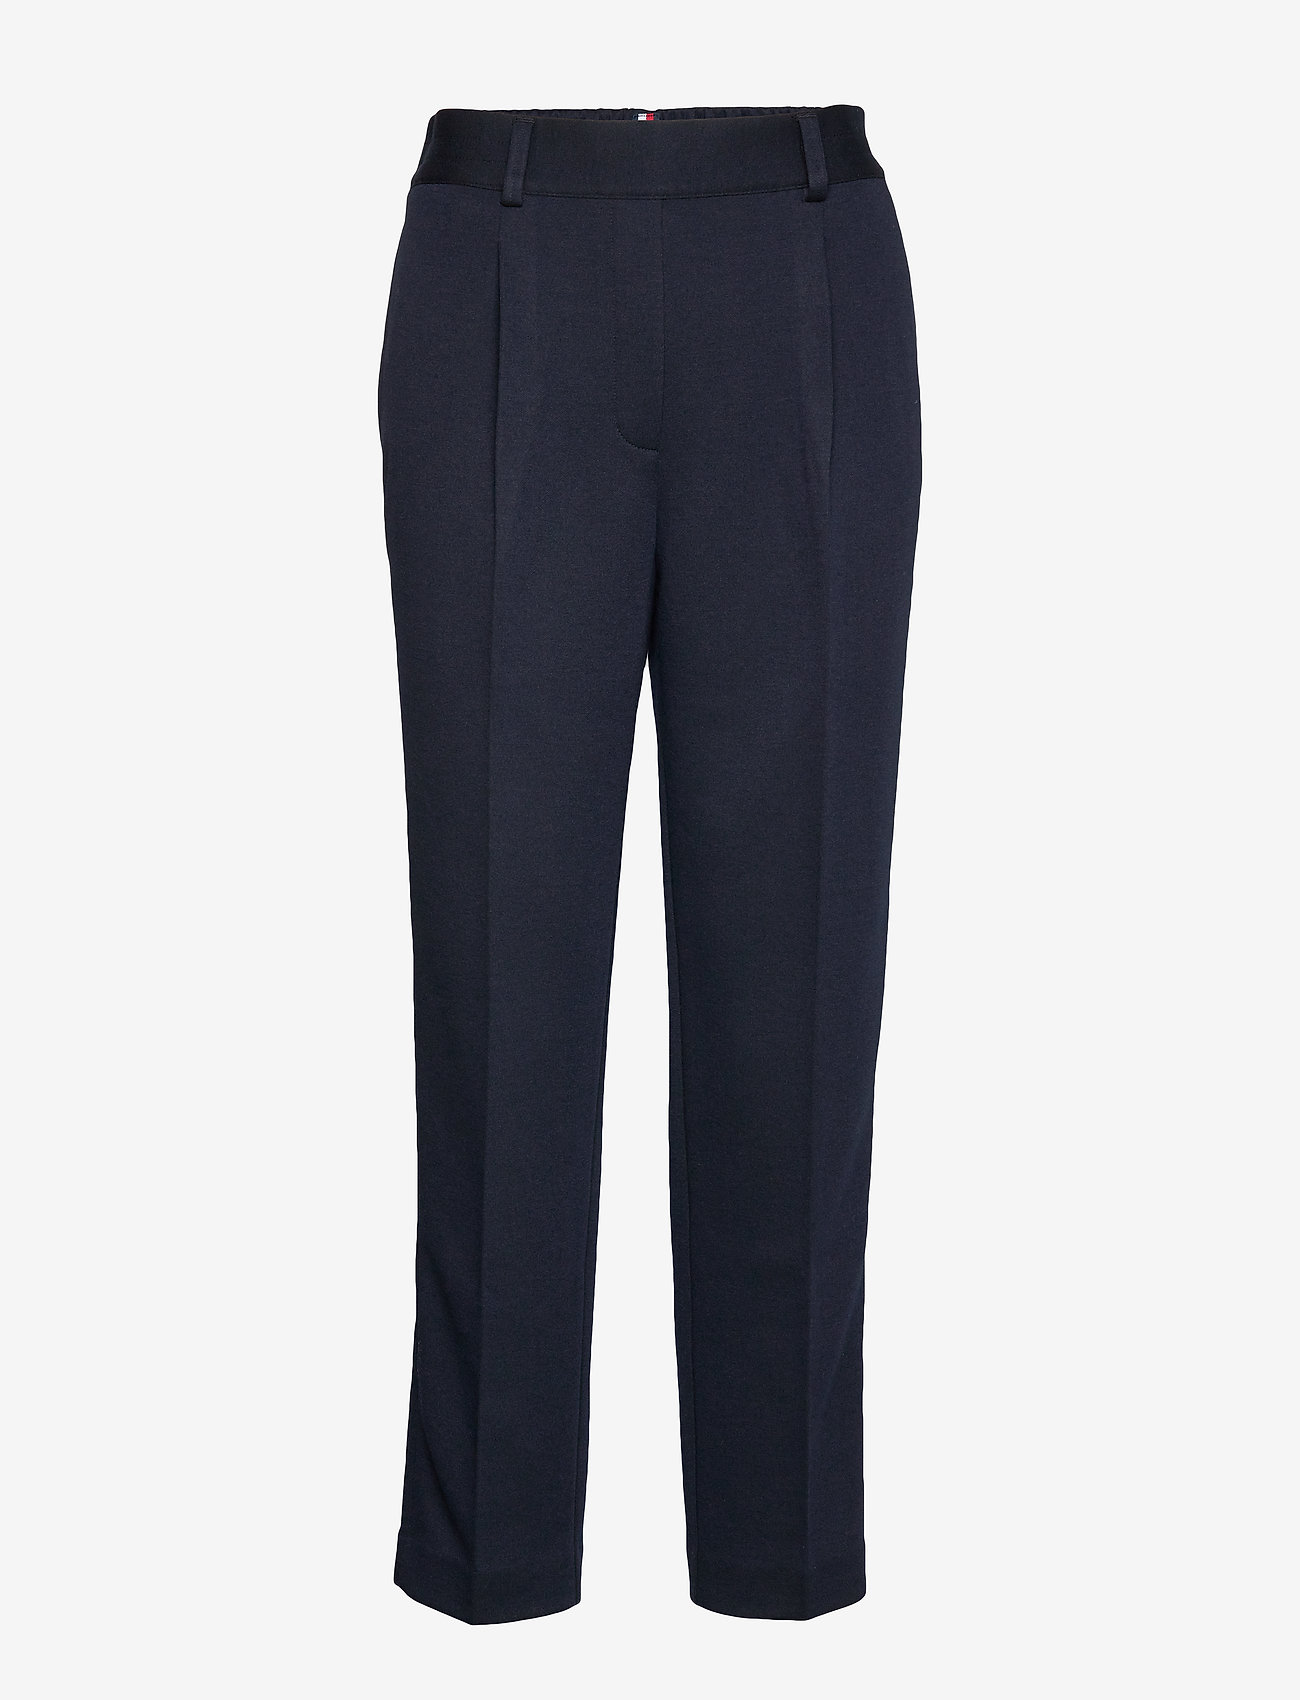 Tommy Hilfiger - TH ESSENTIAL JERSEY PANT - straight leg trousers - desert sky - 0